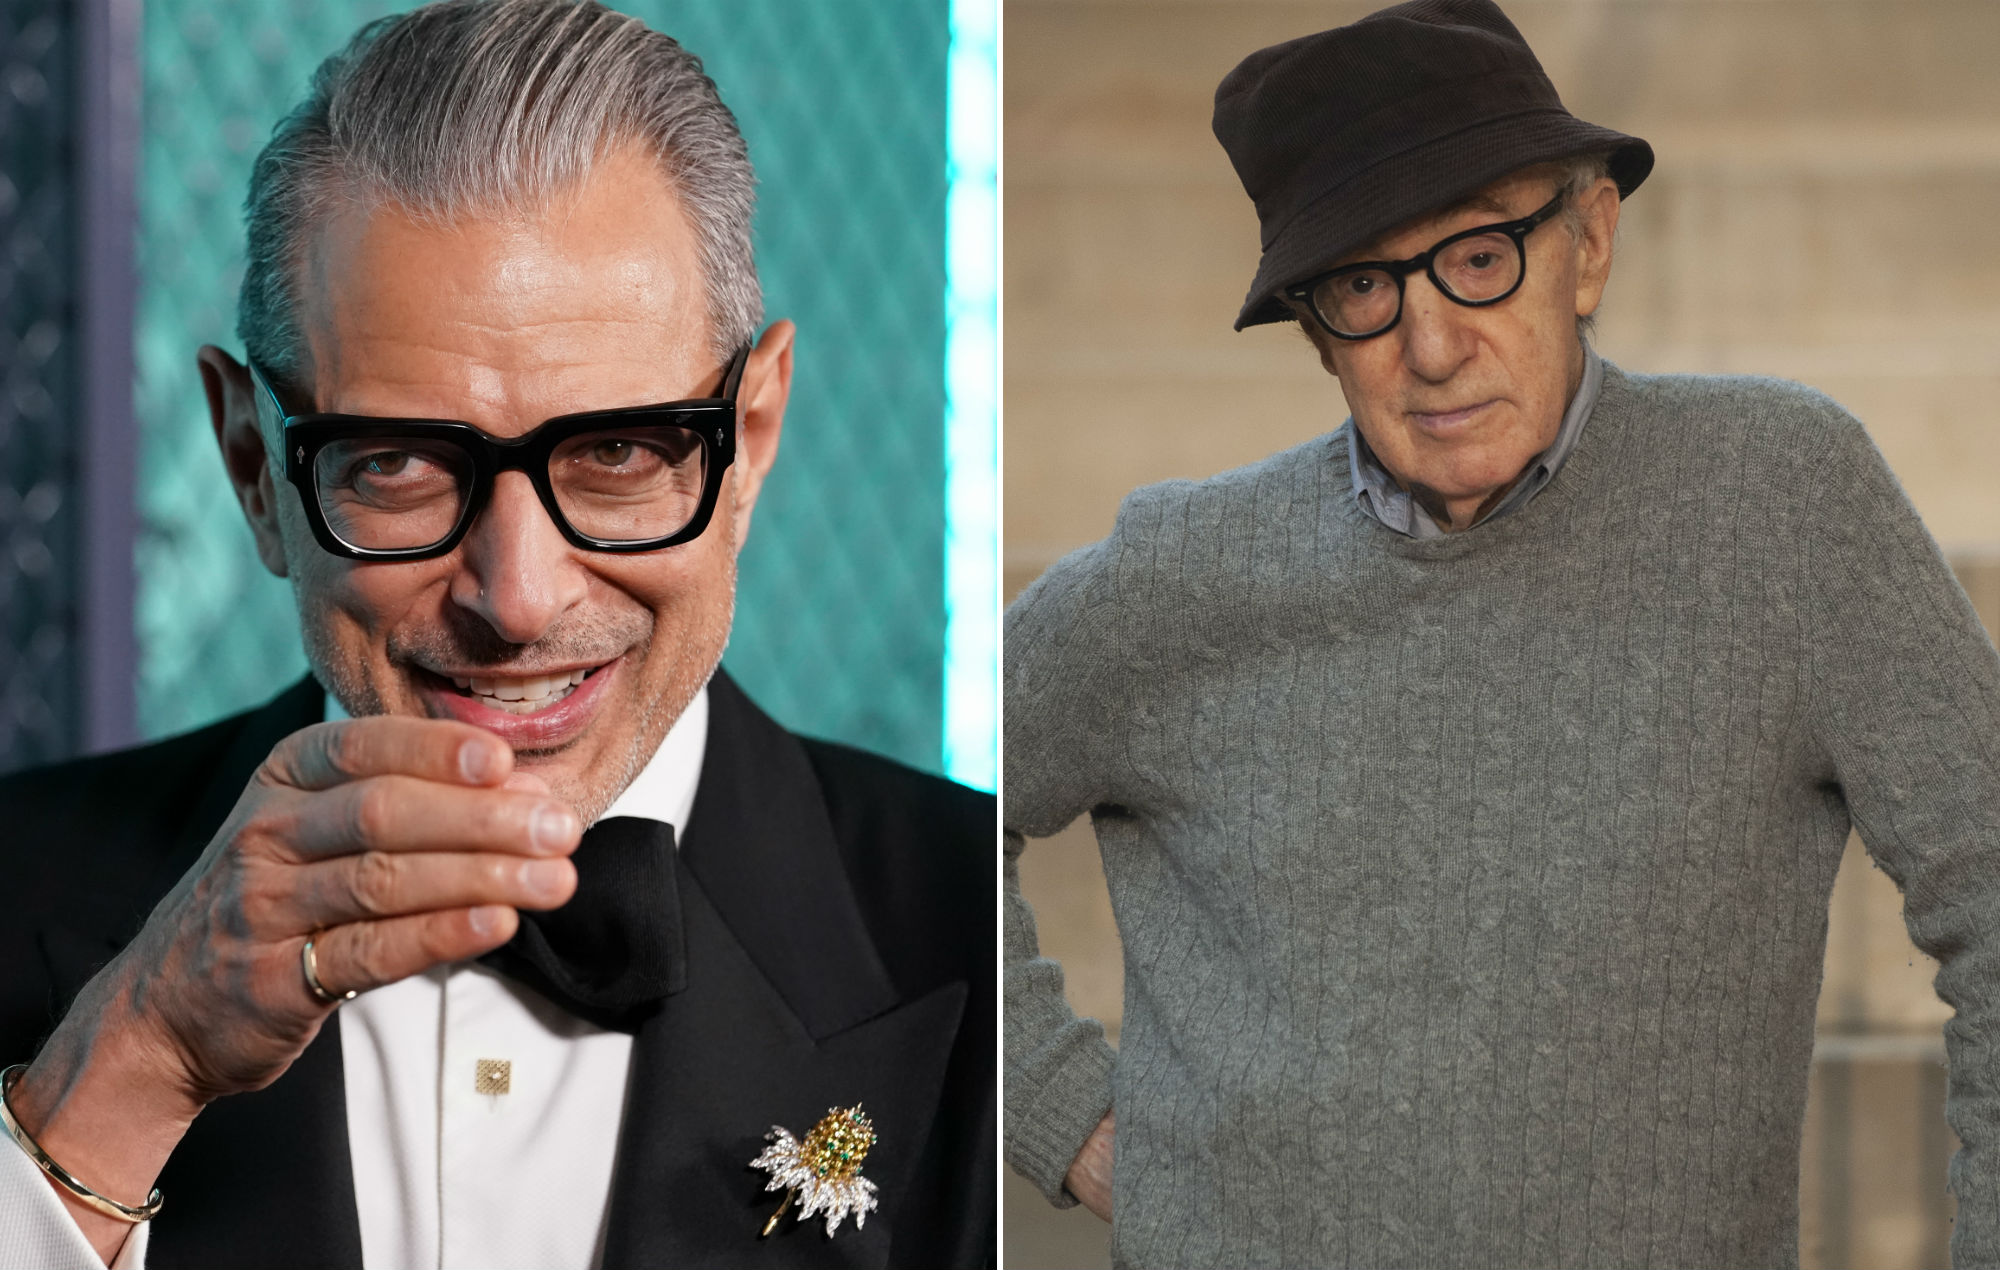 Jeff Goldblum defends Woody Allen and says he would definitely work with him again